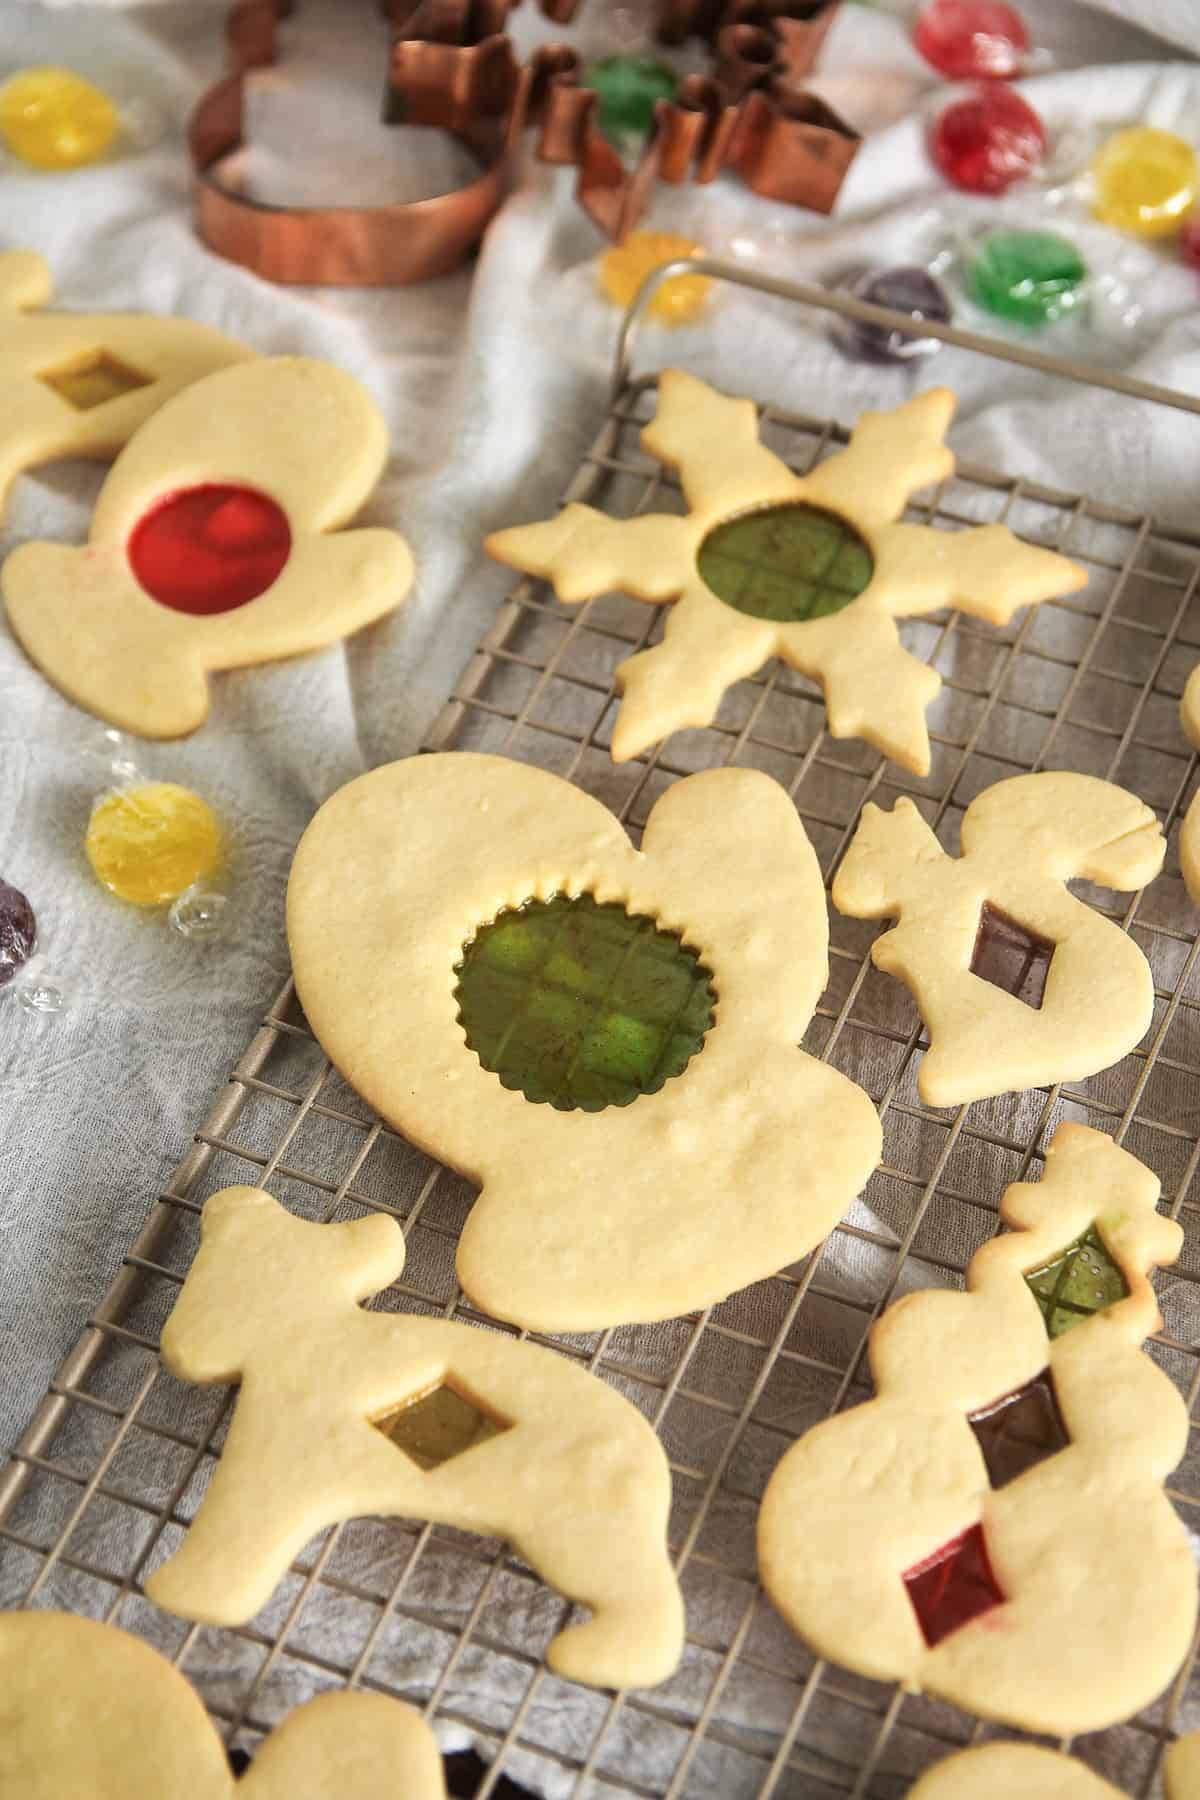 Personalize Stained Glass Cookies with your favorite colored hard candies. They're so much easier than frosting cookies!